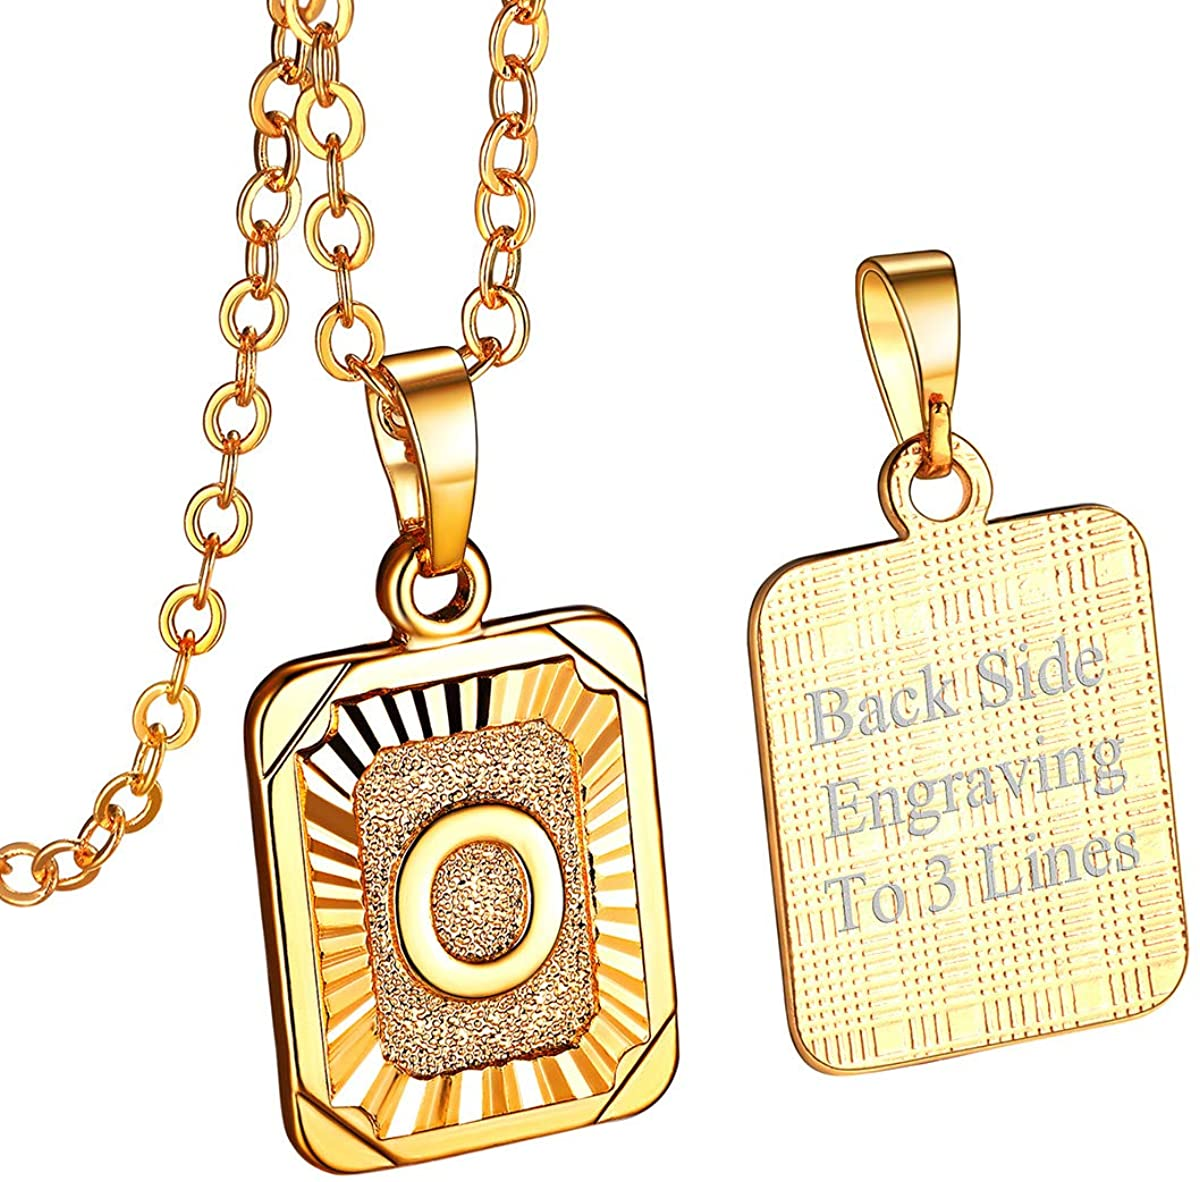 FOCALOOK Initial Letter Pendant Necklace Mens Womens Capital Letter Yellow 18K Gold Plated A-Z Golden Chain 20-22inch, with Free Custom